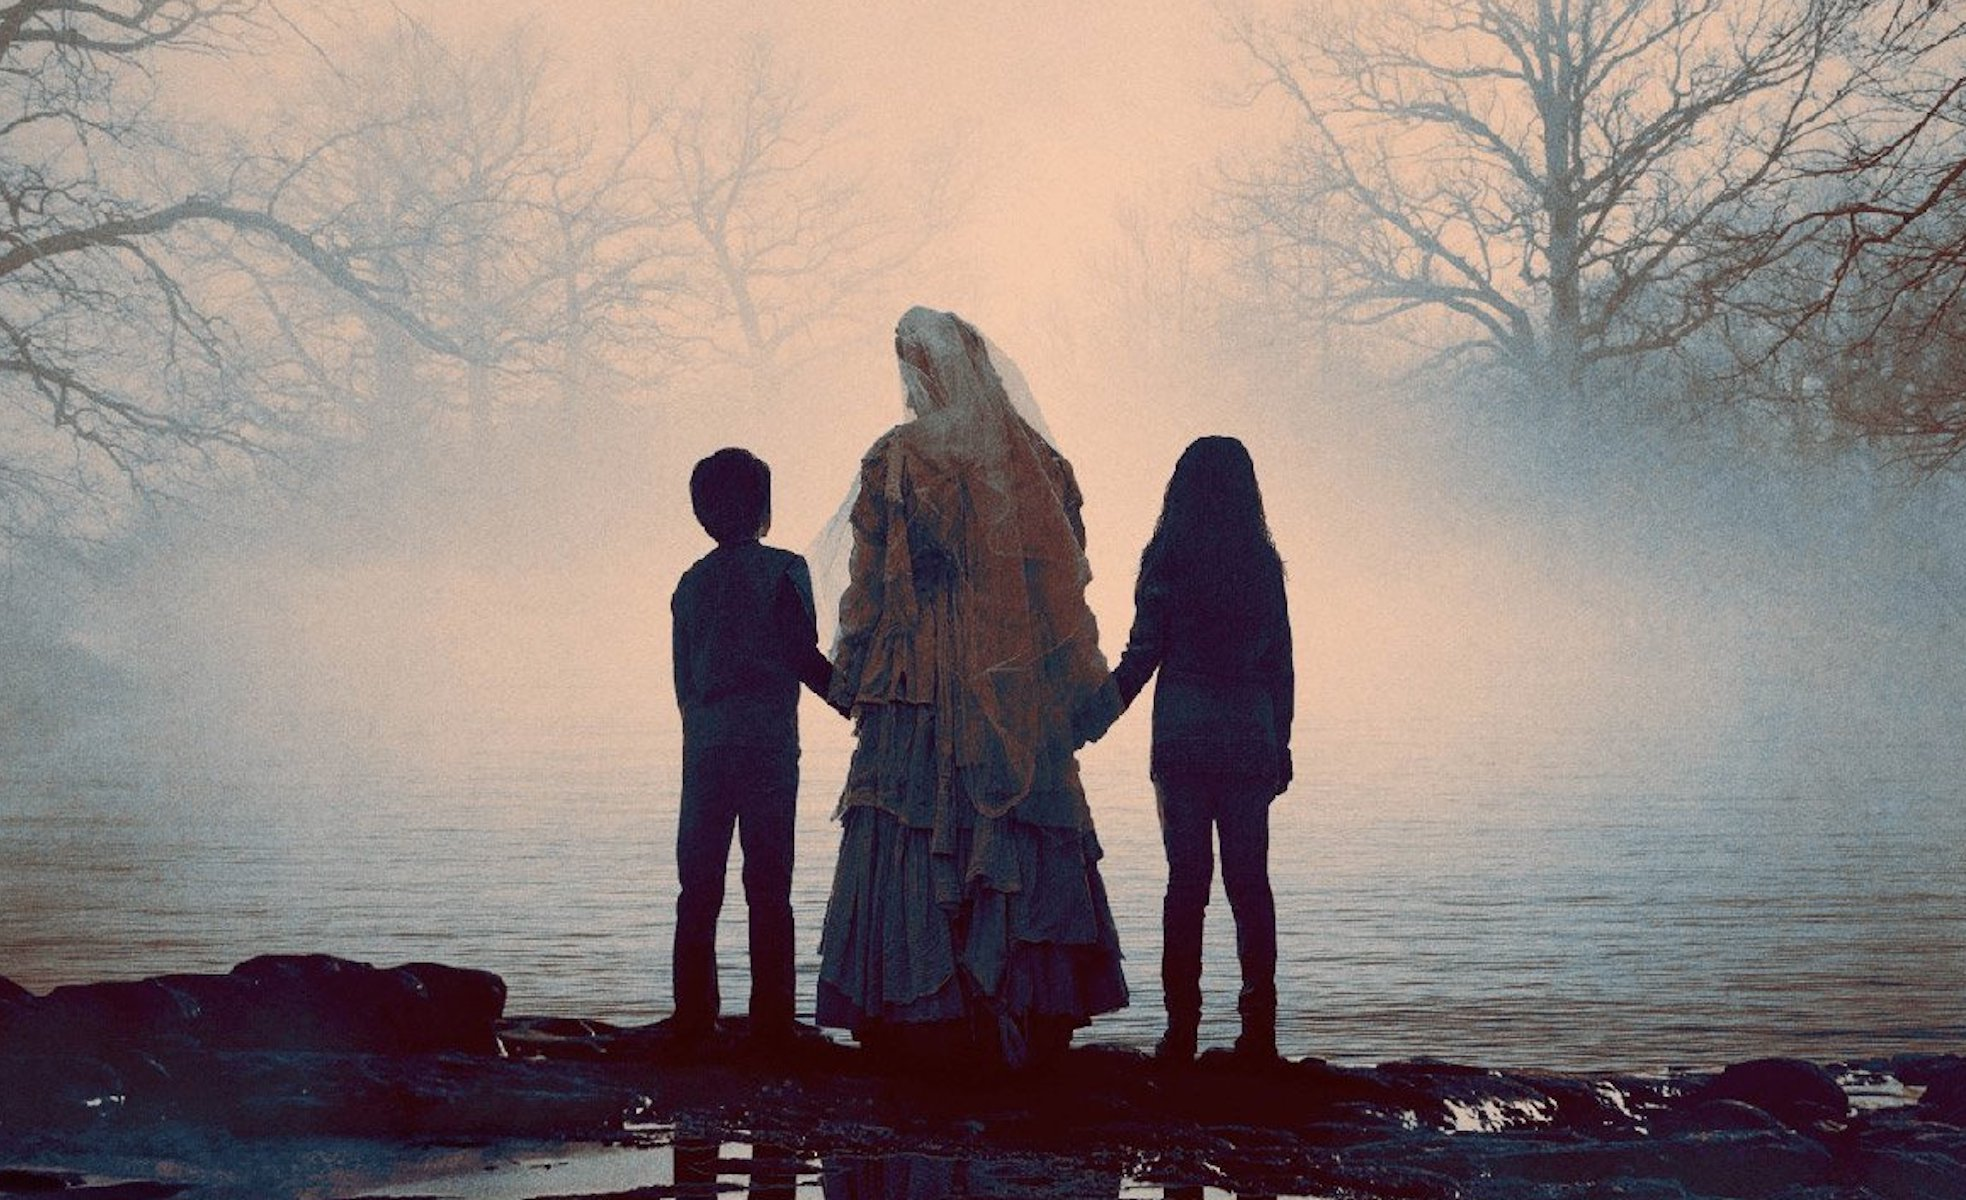 The Latino Cast of 'The Curse of La Llorona' Knew They Were Playing with Fire